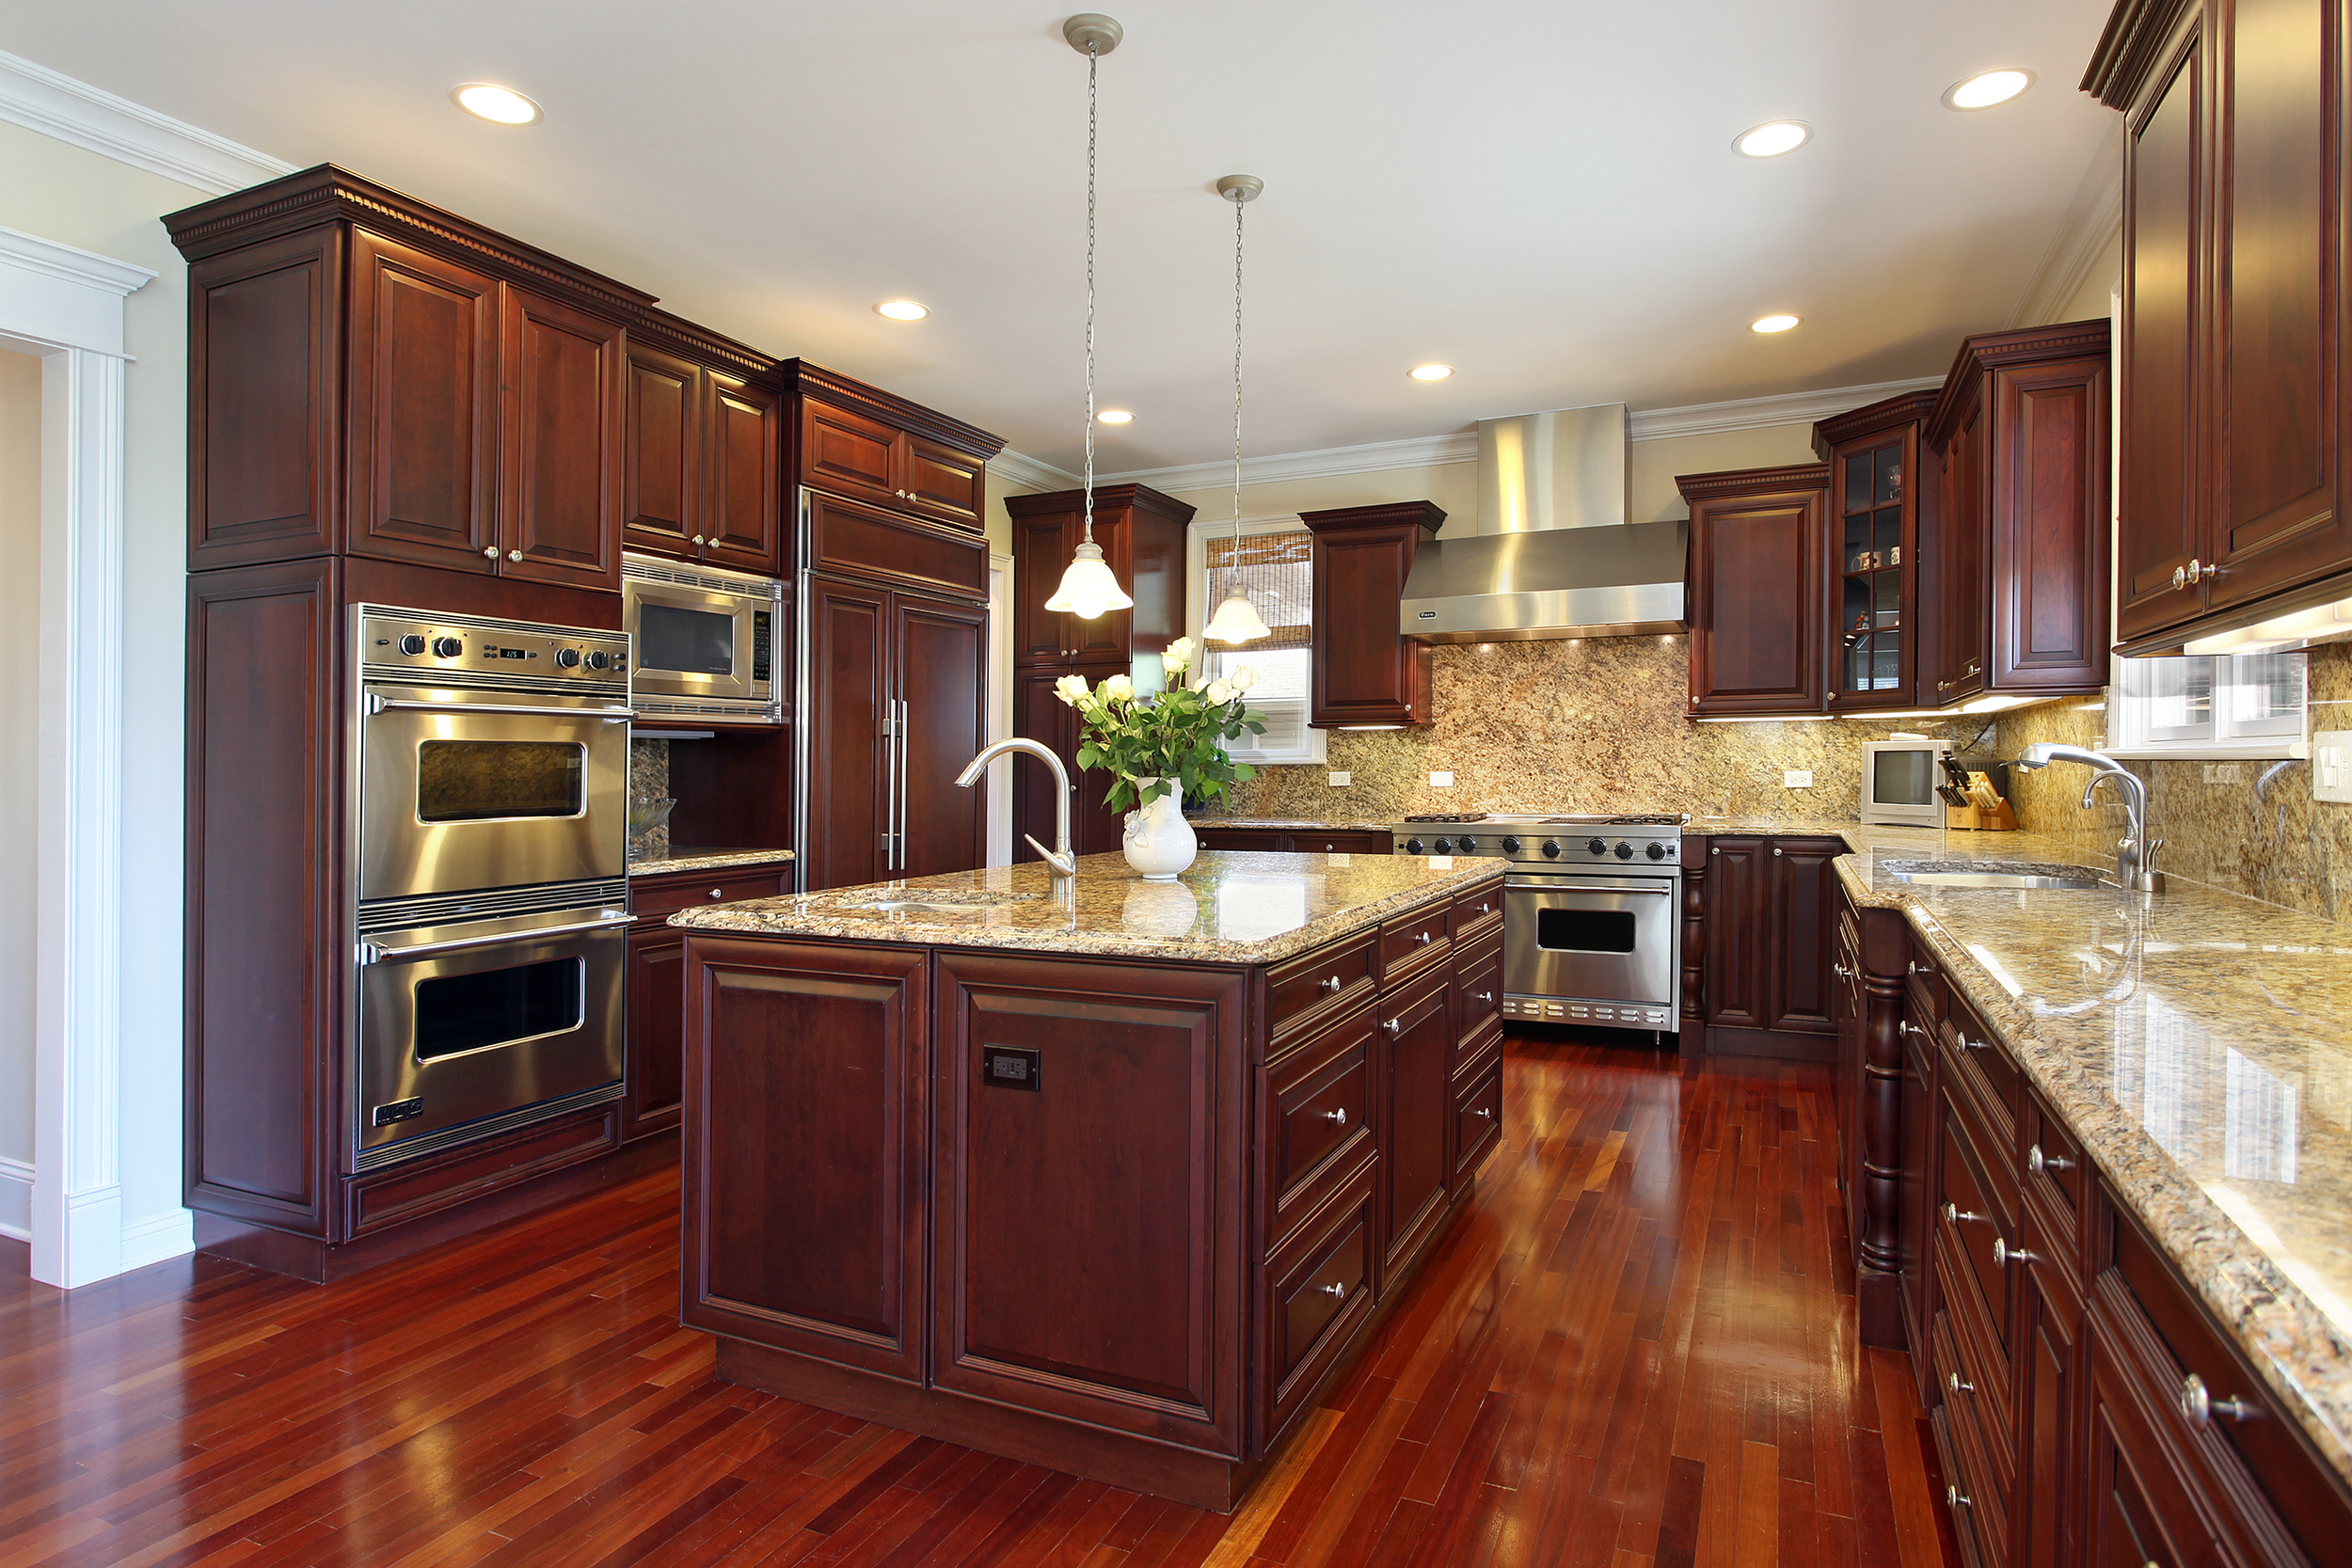 Kitchen-DarkerWood+Granite-shutterstock_41064214.jpg